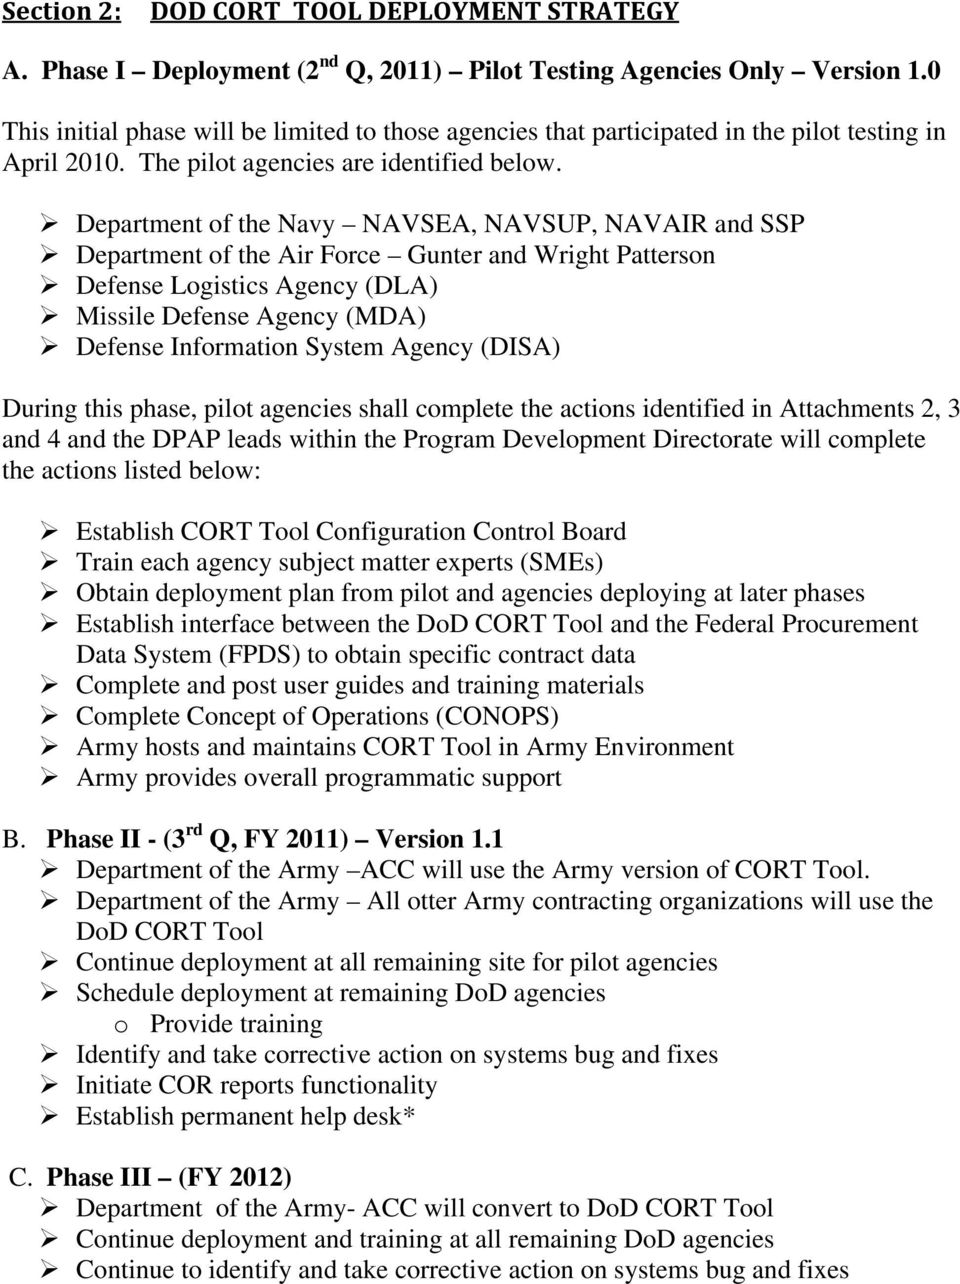 Department of the Navy NAVSEA, NAVSUP, NAVAIR and SSP Department of the Air Force Gunter and Wright Patterson Defense Logistics Agency (DLA) Missile Defense Agency (MDA) Defense Information System